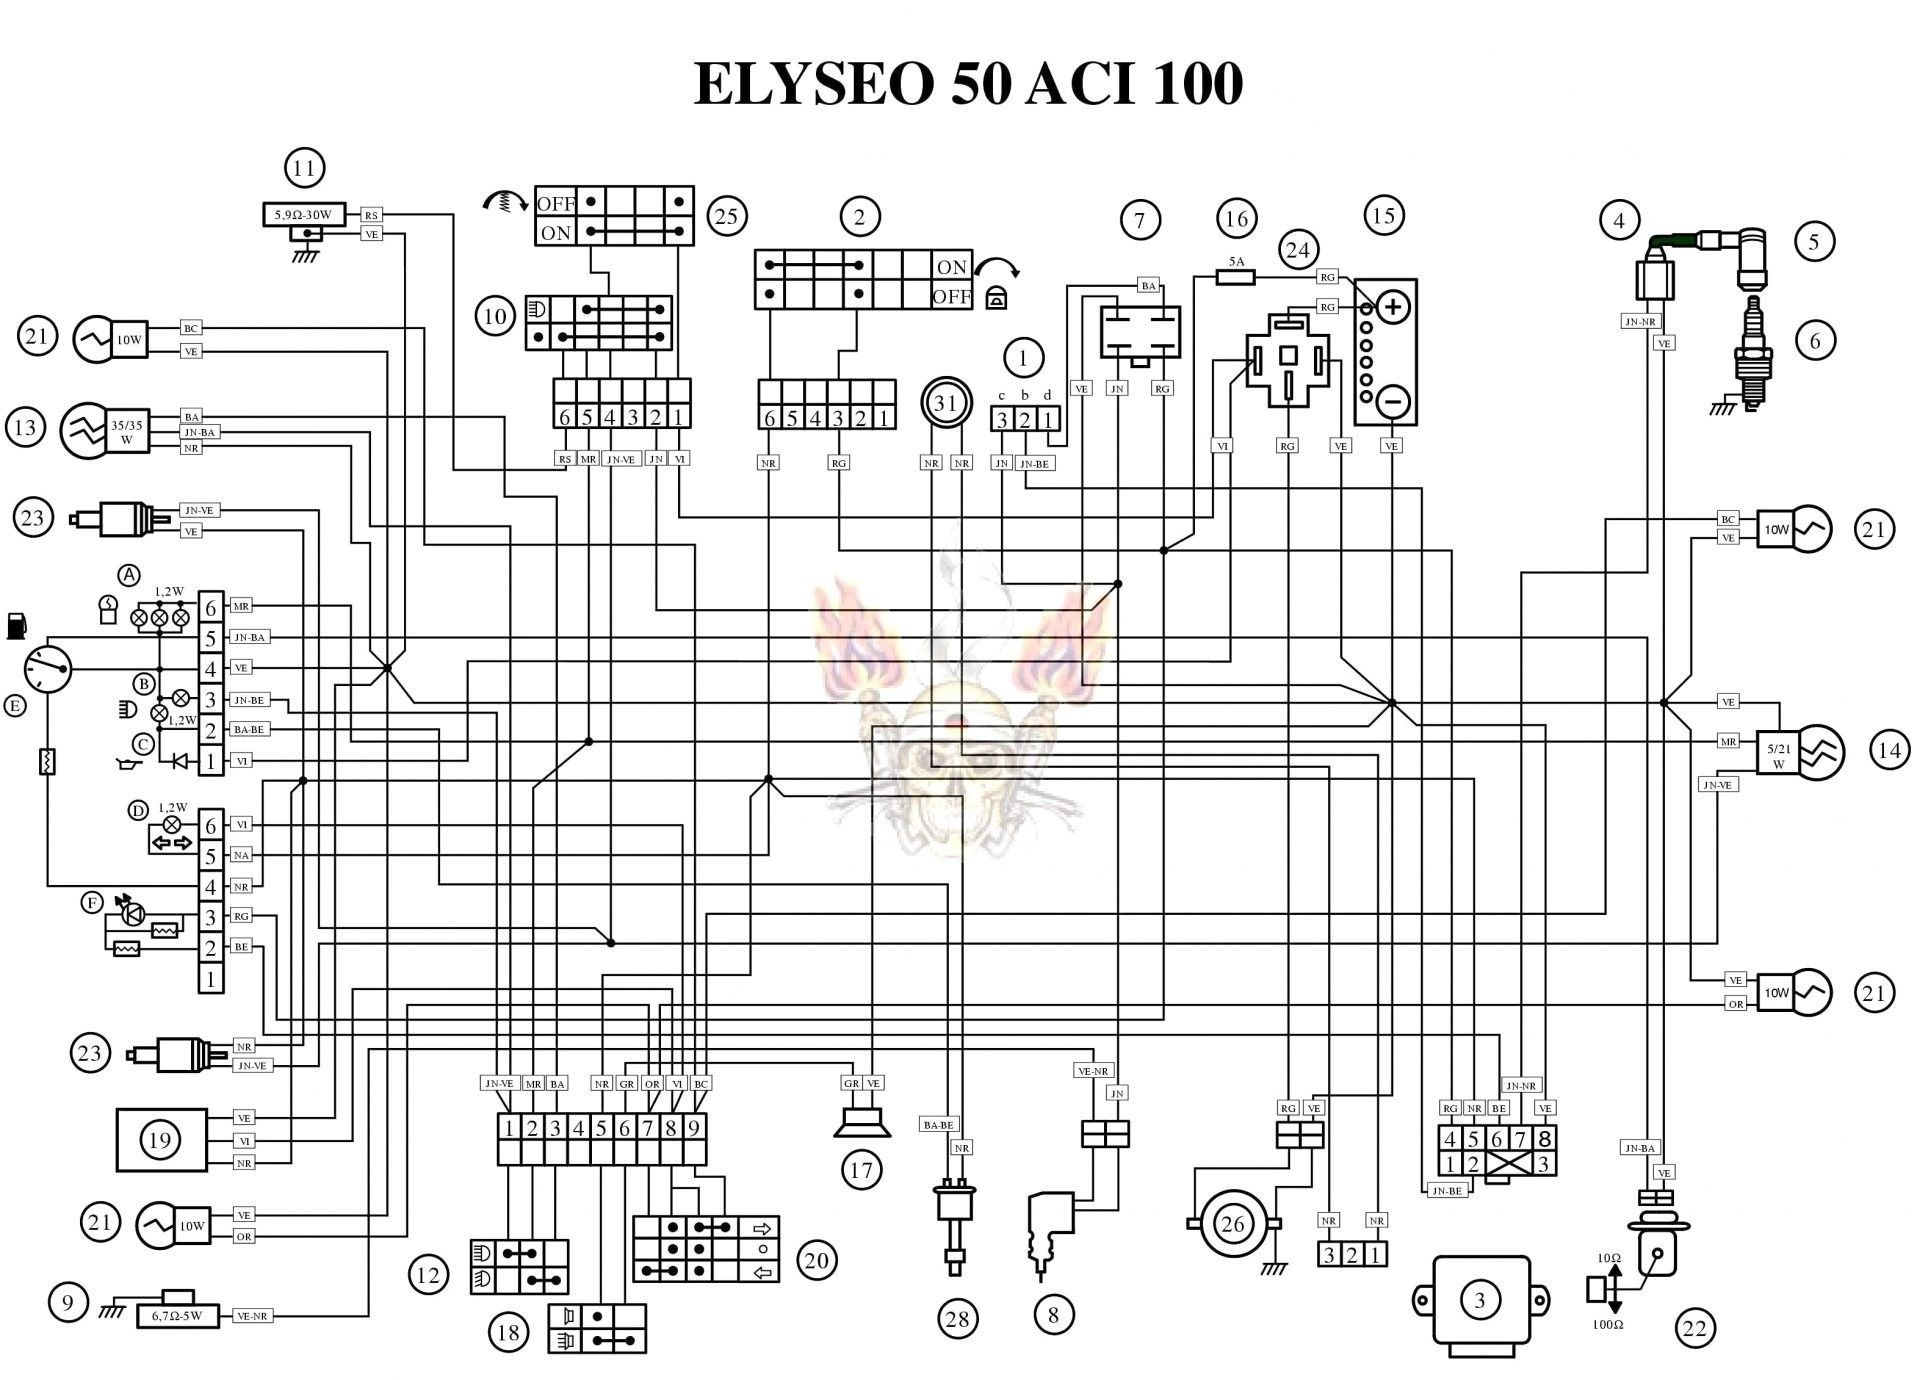 Unique Australian 610 Socket Wiring Diagram Diagram Diagramtemplate Diagramsample Electrical Wiring Diagram Diagram Peugeot